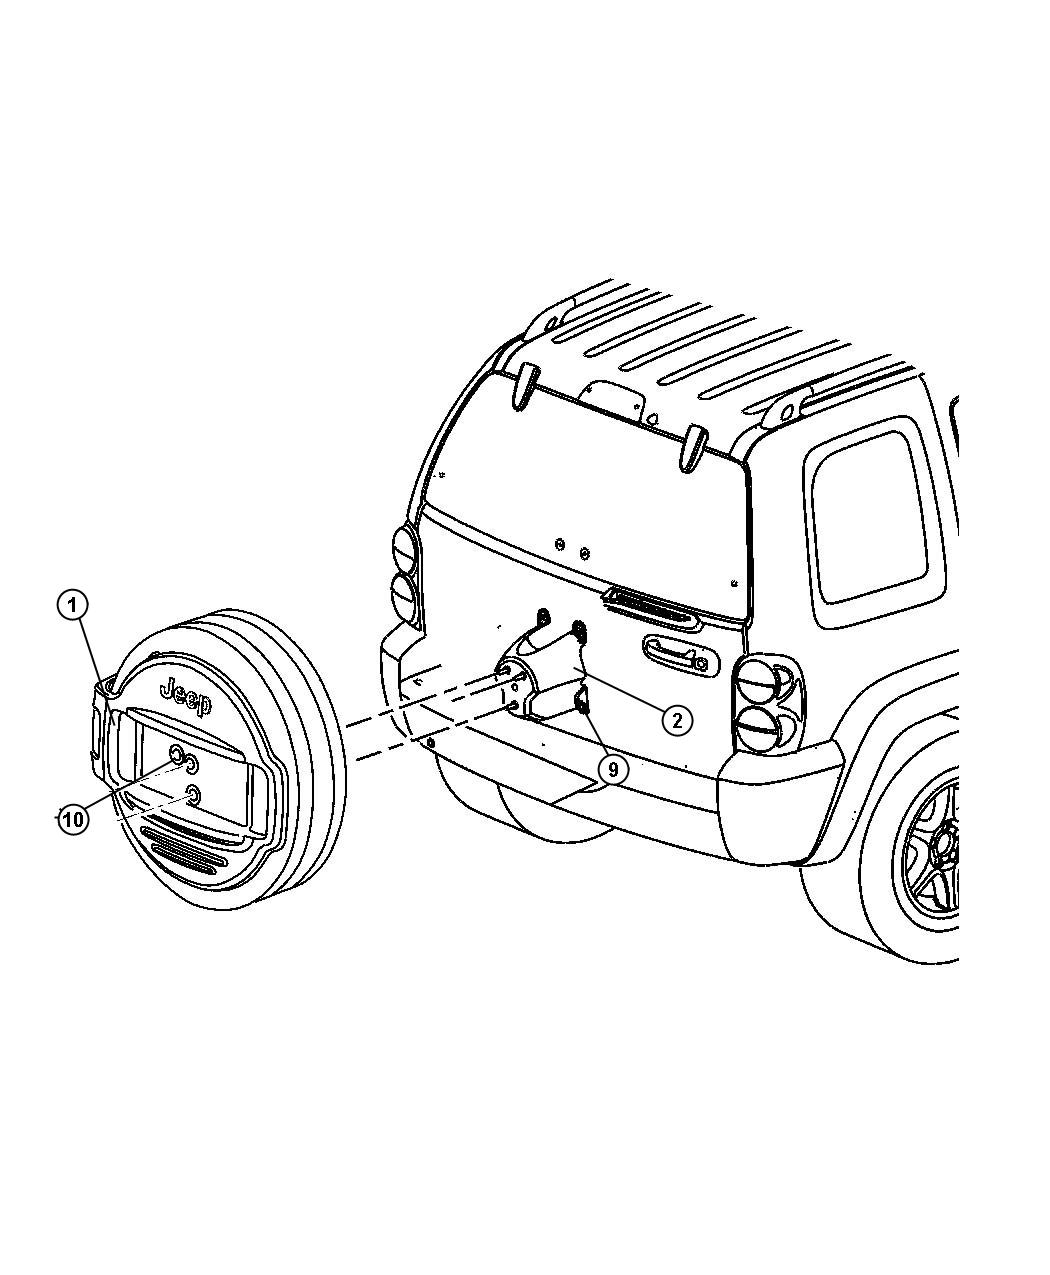 Jeep Liberty Transmission Control Module Sketch Coloring Page